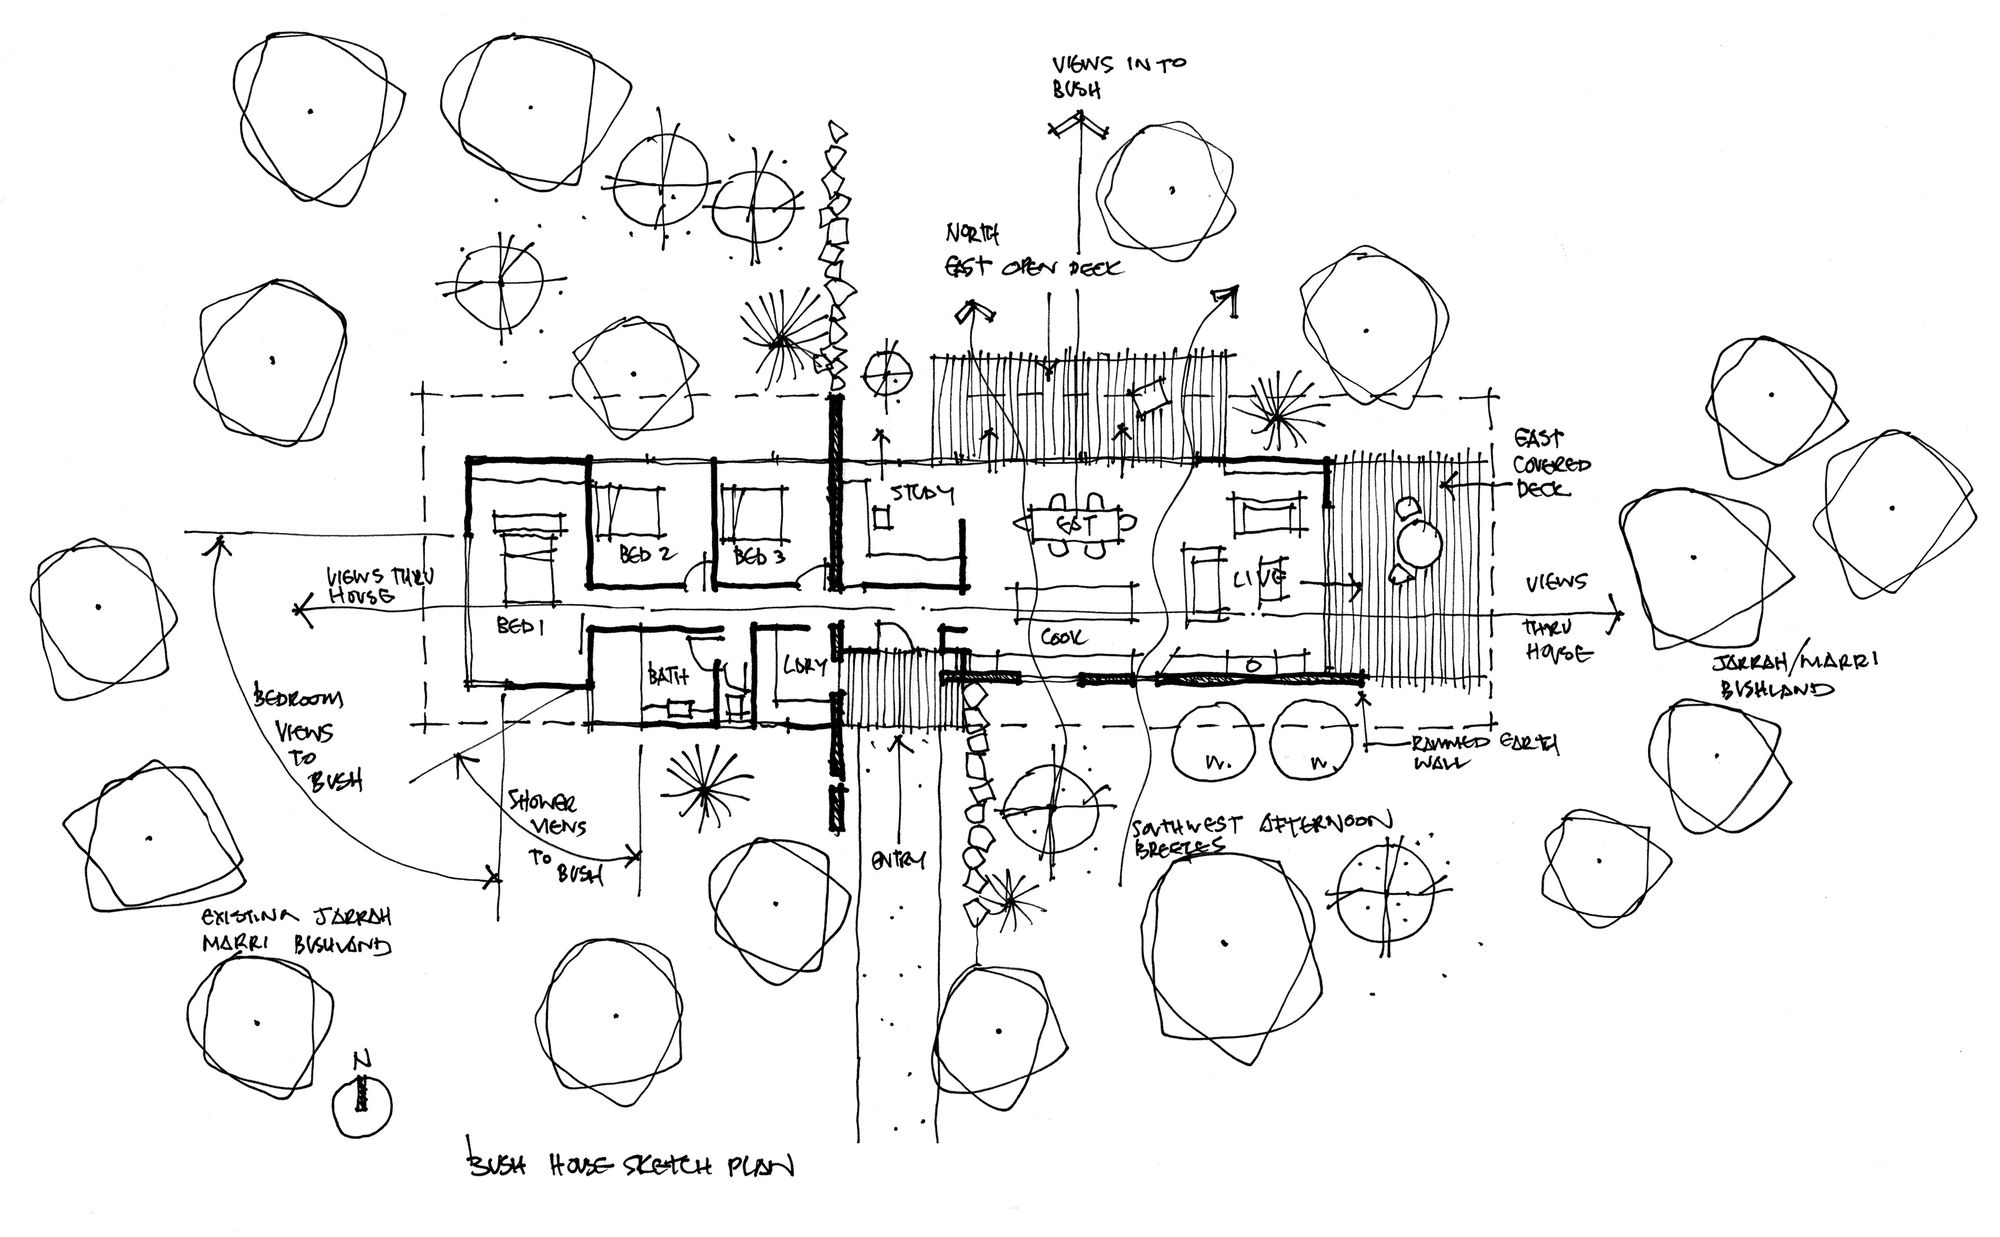 medium resolution of image 24 of 28 from gallery of bush house archterra architects croquis floor plan